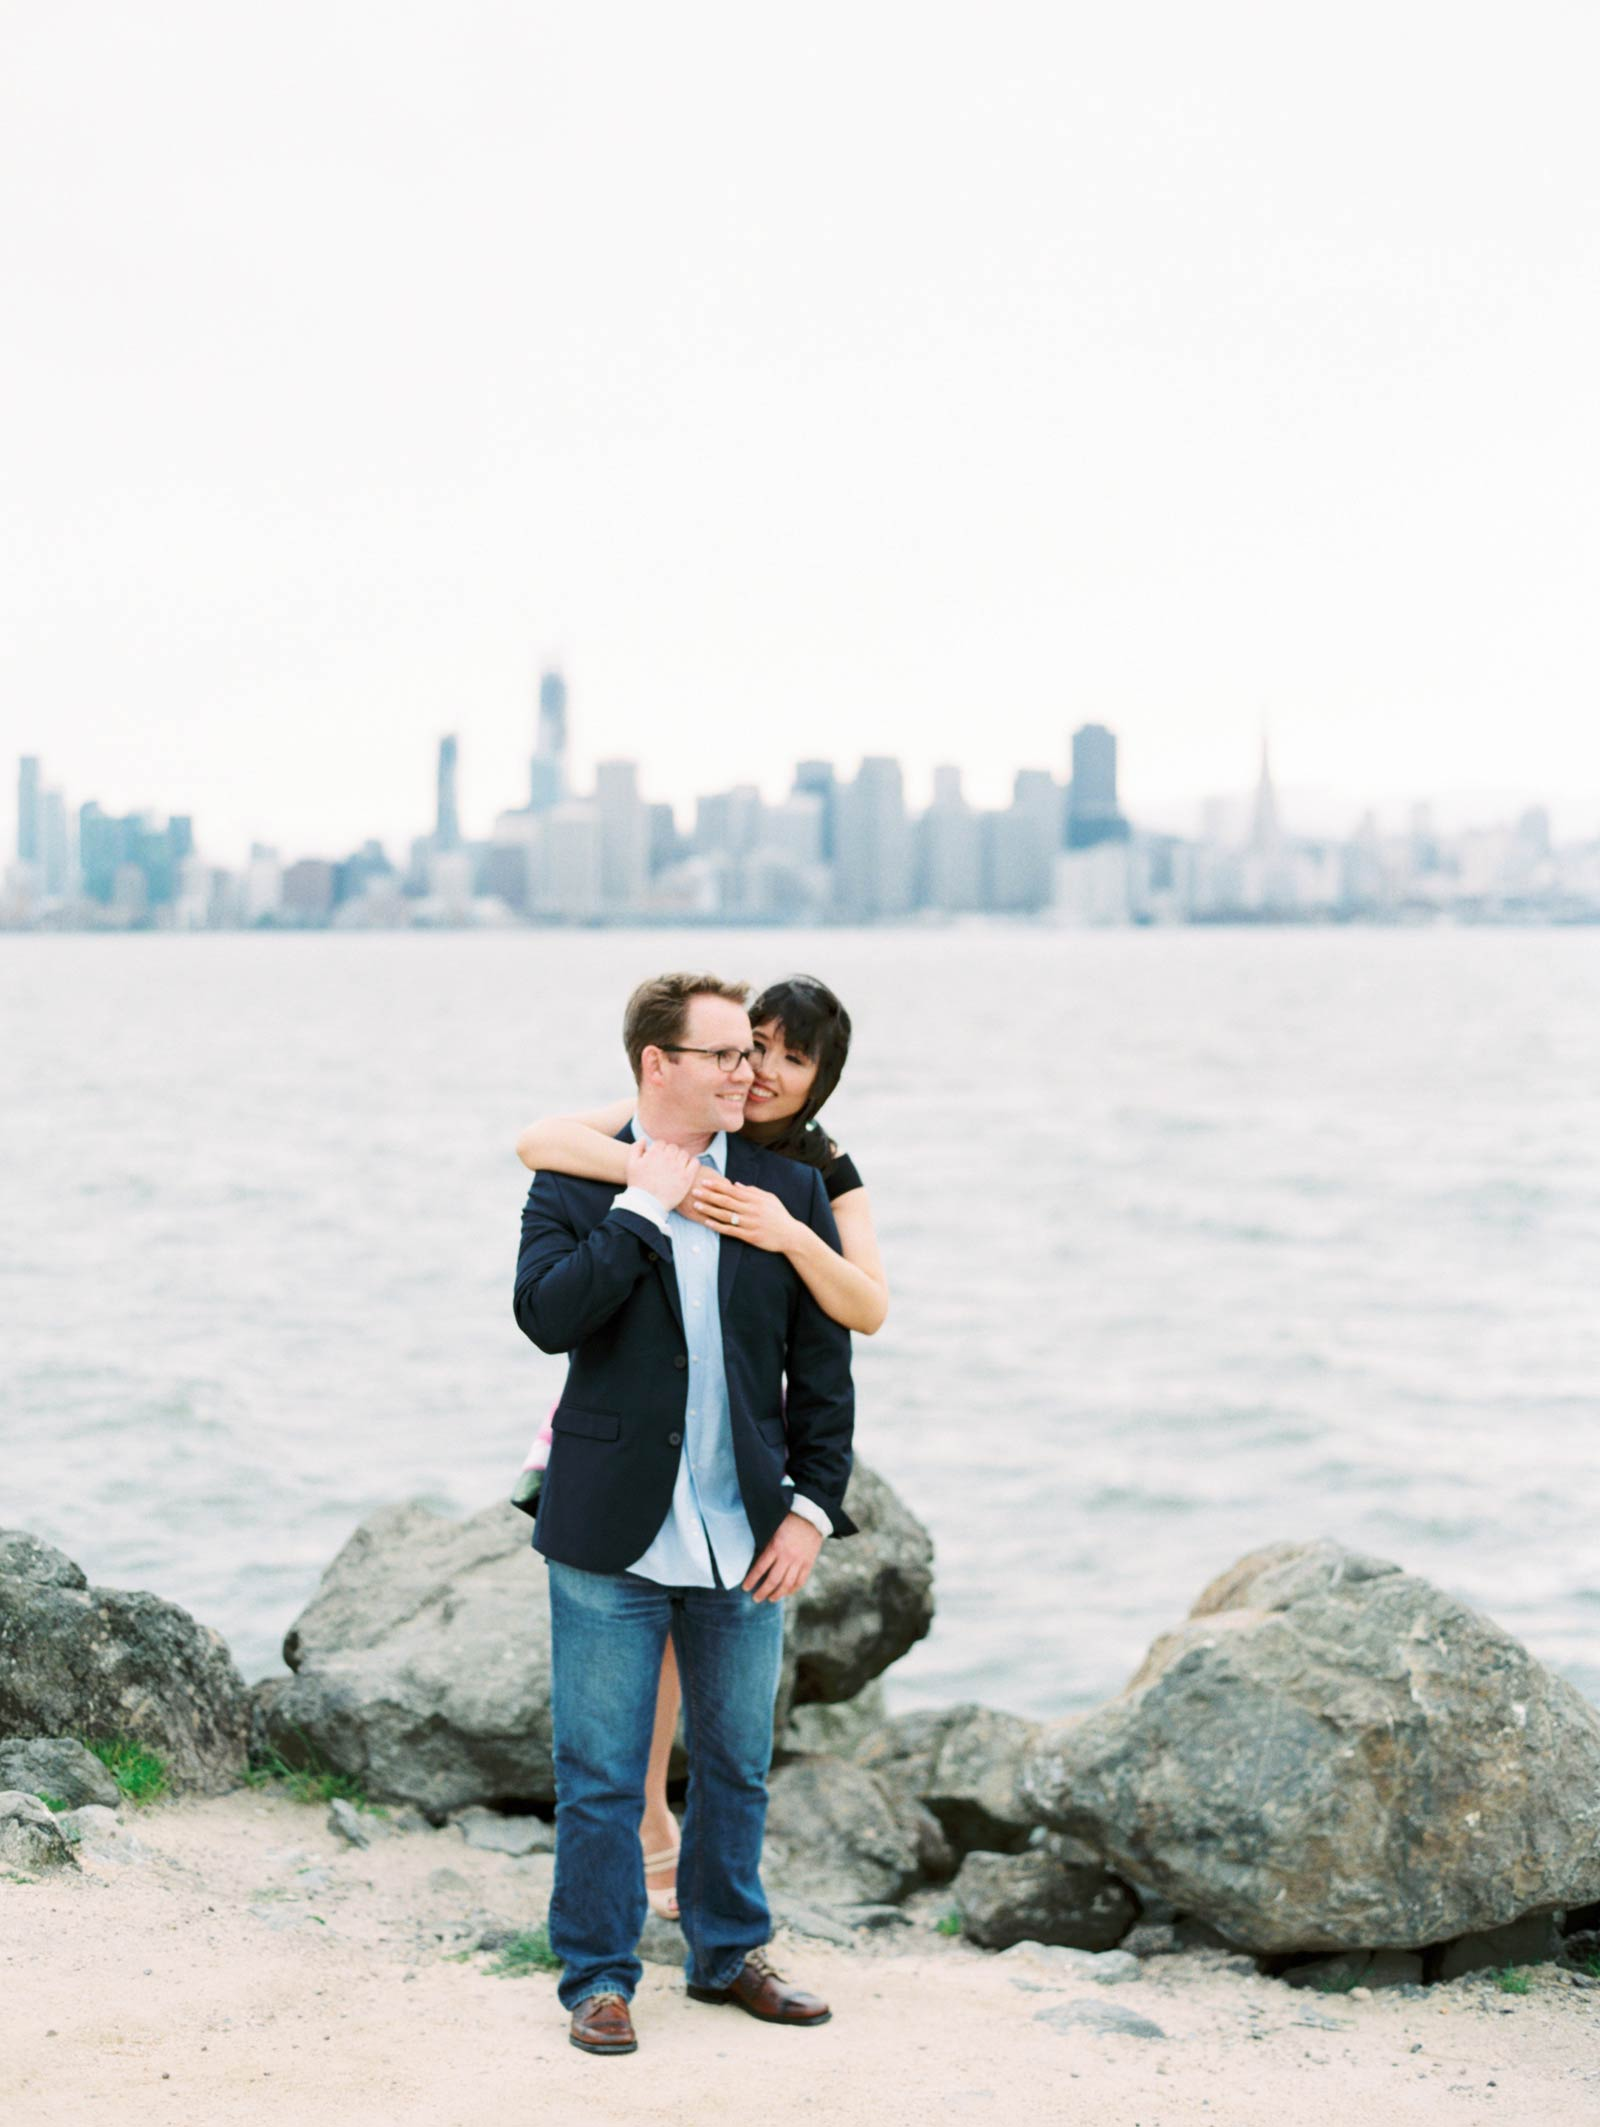 Treasure Island engagement photo ideas